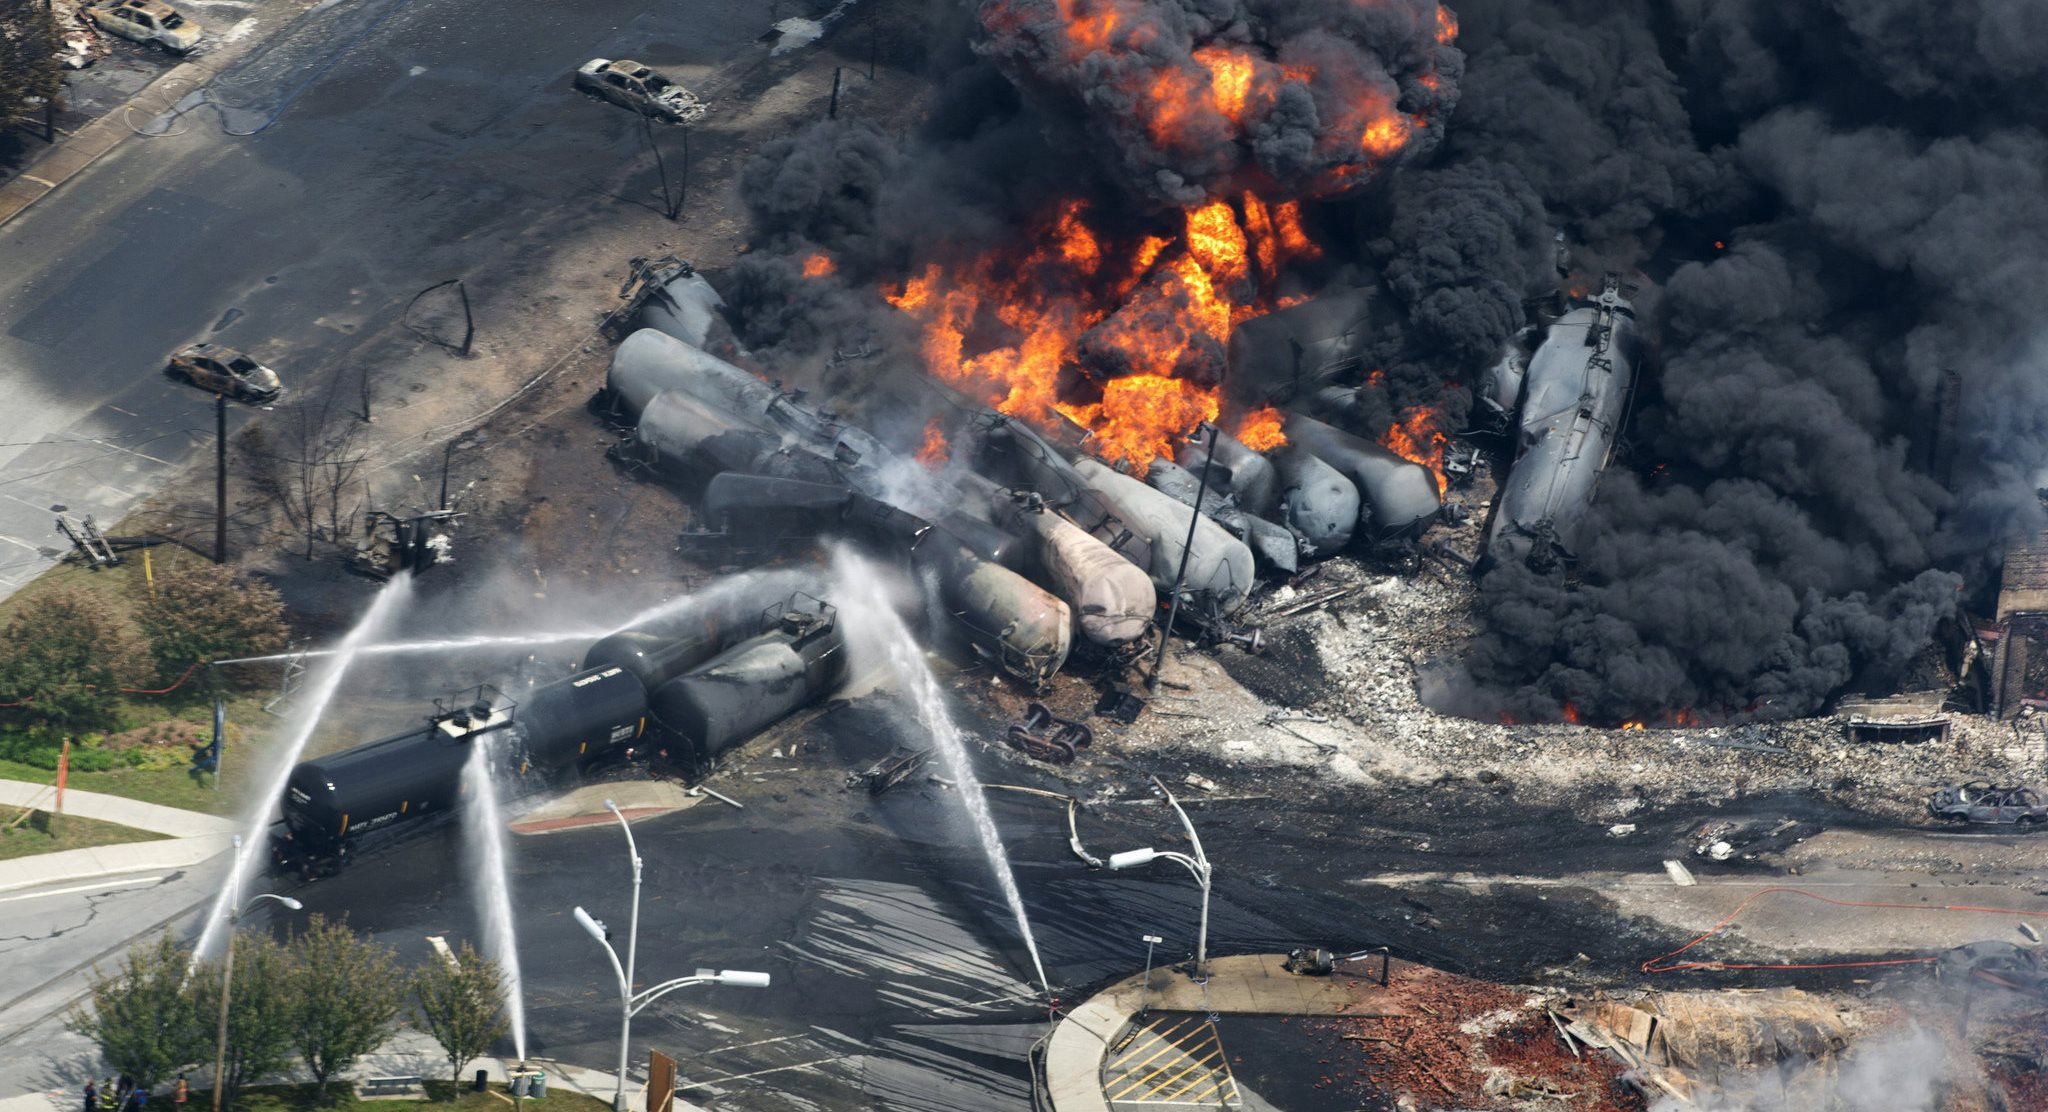 quebec-oil-train-derailment-Paul-Chiasson